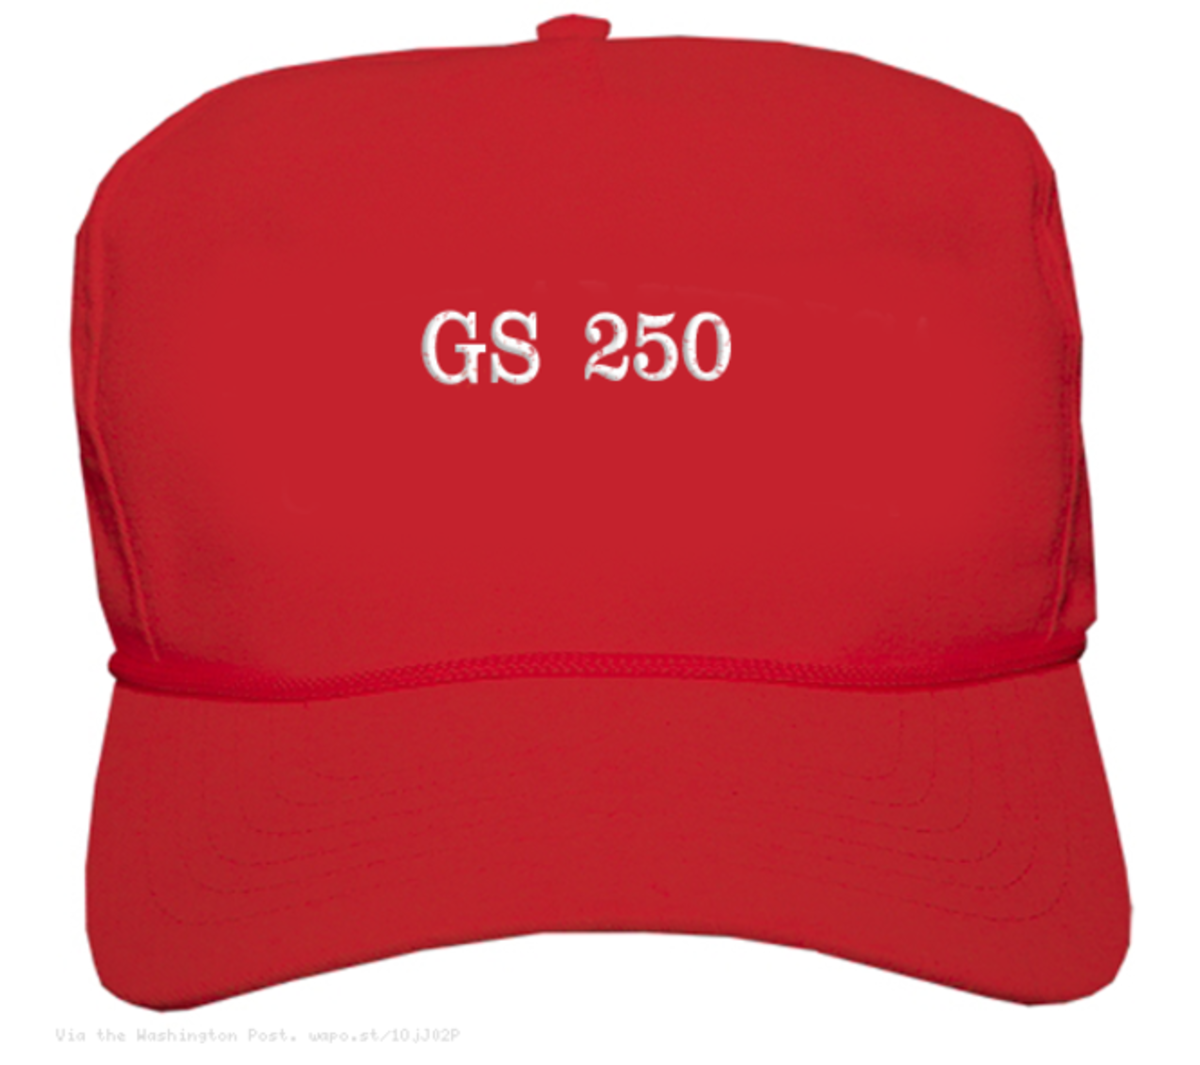 (Washington Post hat generator)